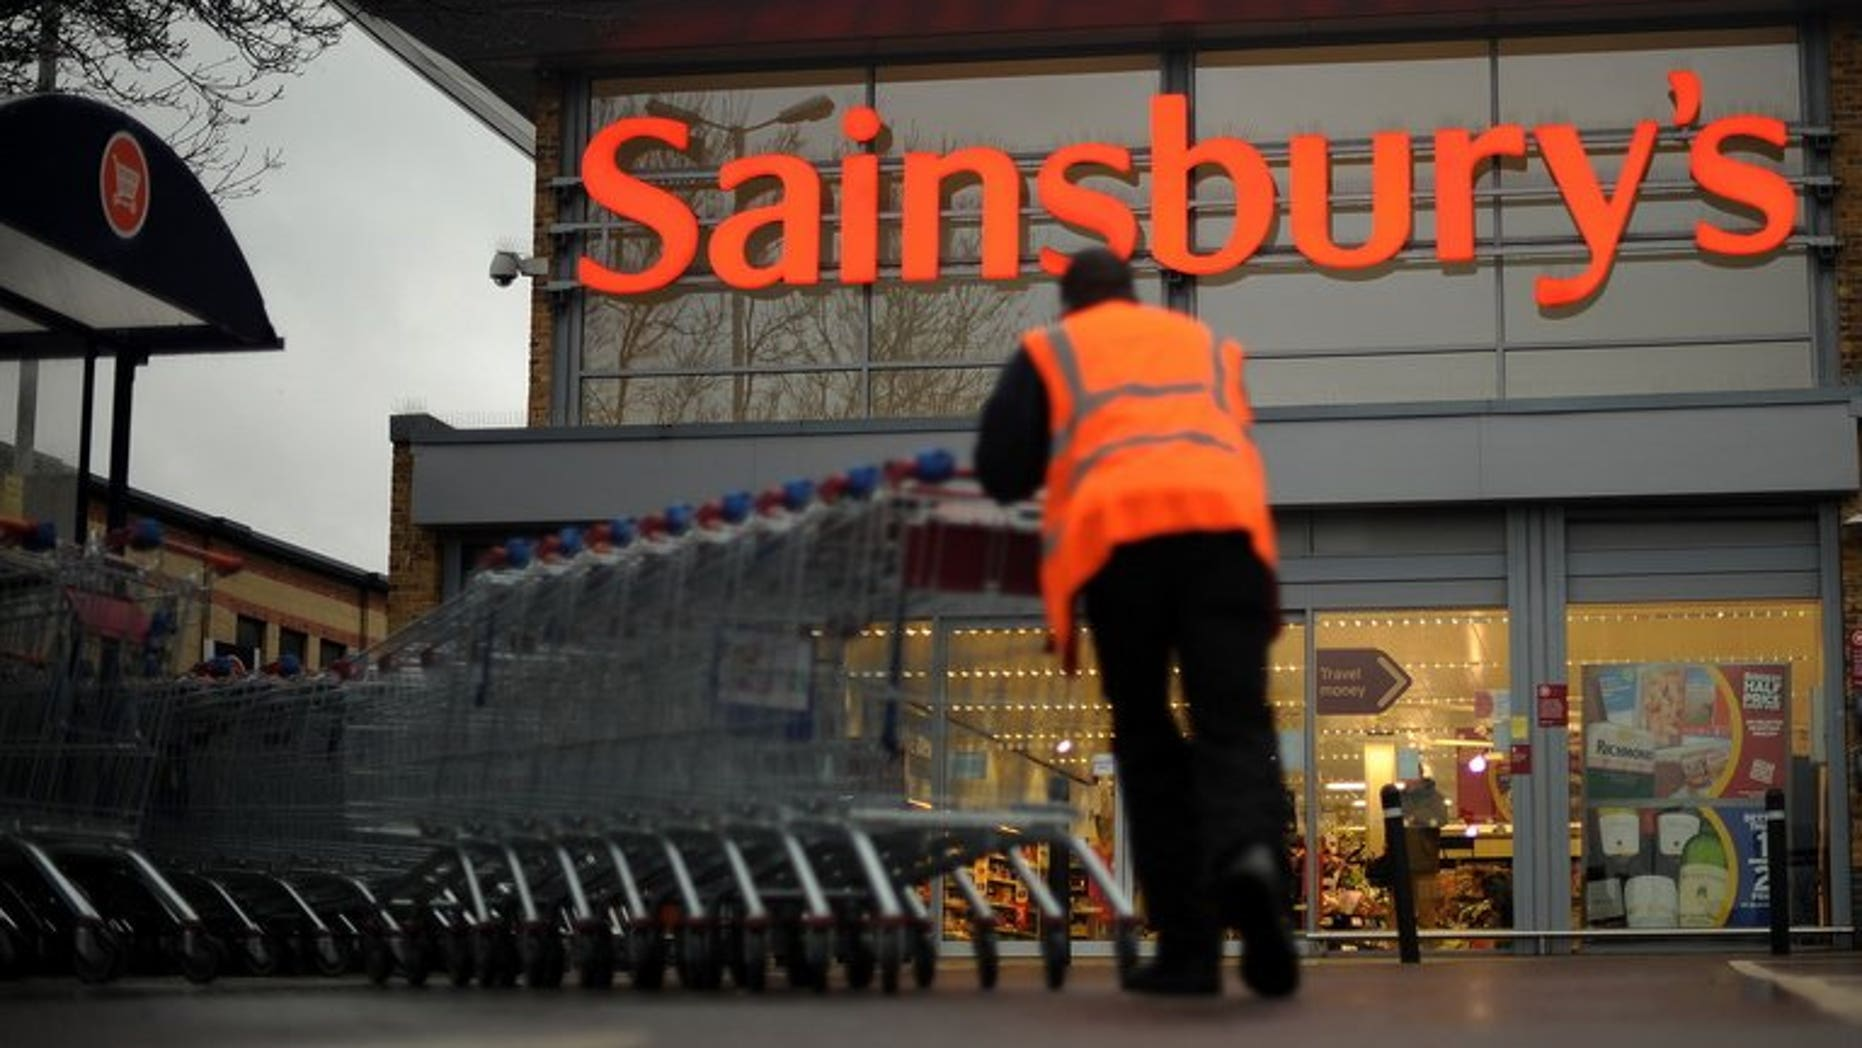 An employee moves shopping trolleys in front of a Sainsbury's store in London, on January 12, 2011. Sainsbury's has issued a recall of all of its bagged watercress and salads containing watercress due to an outbreak of E. coli.